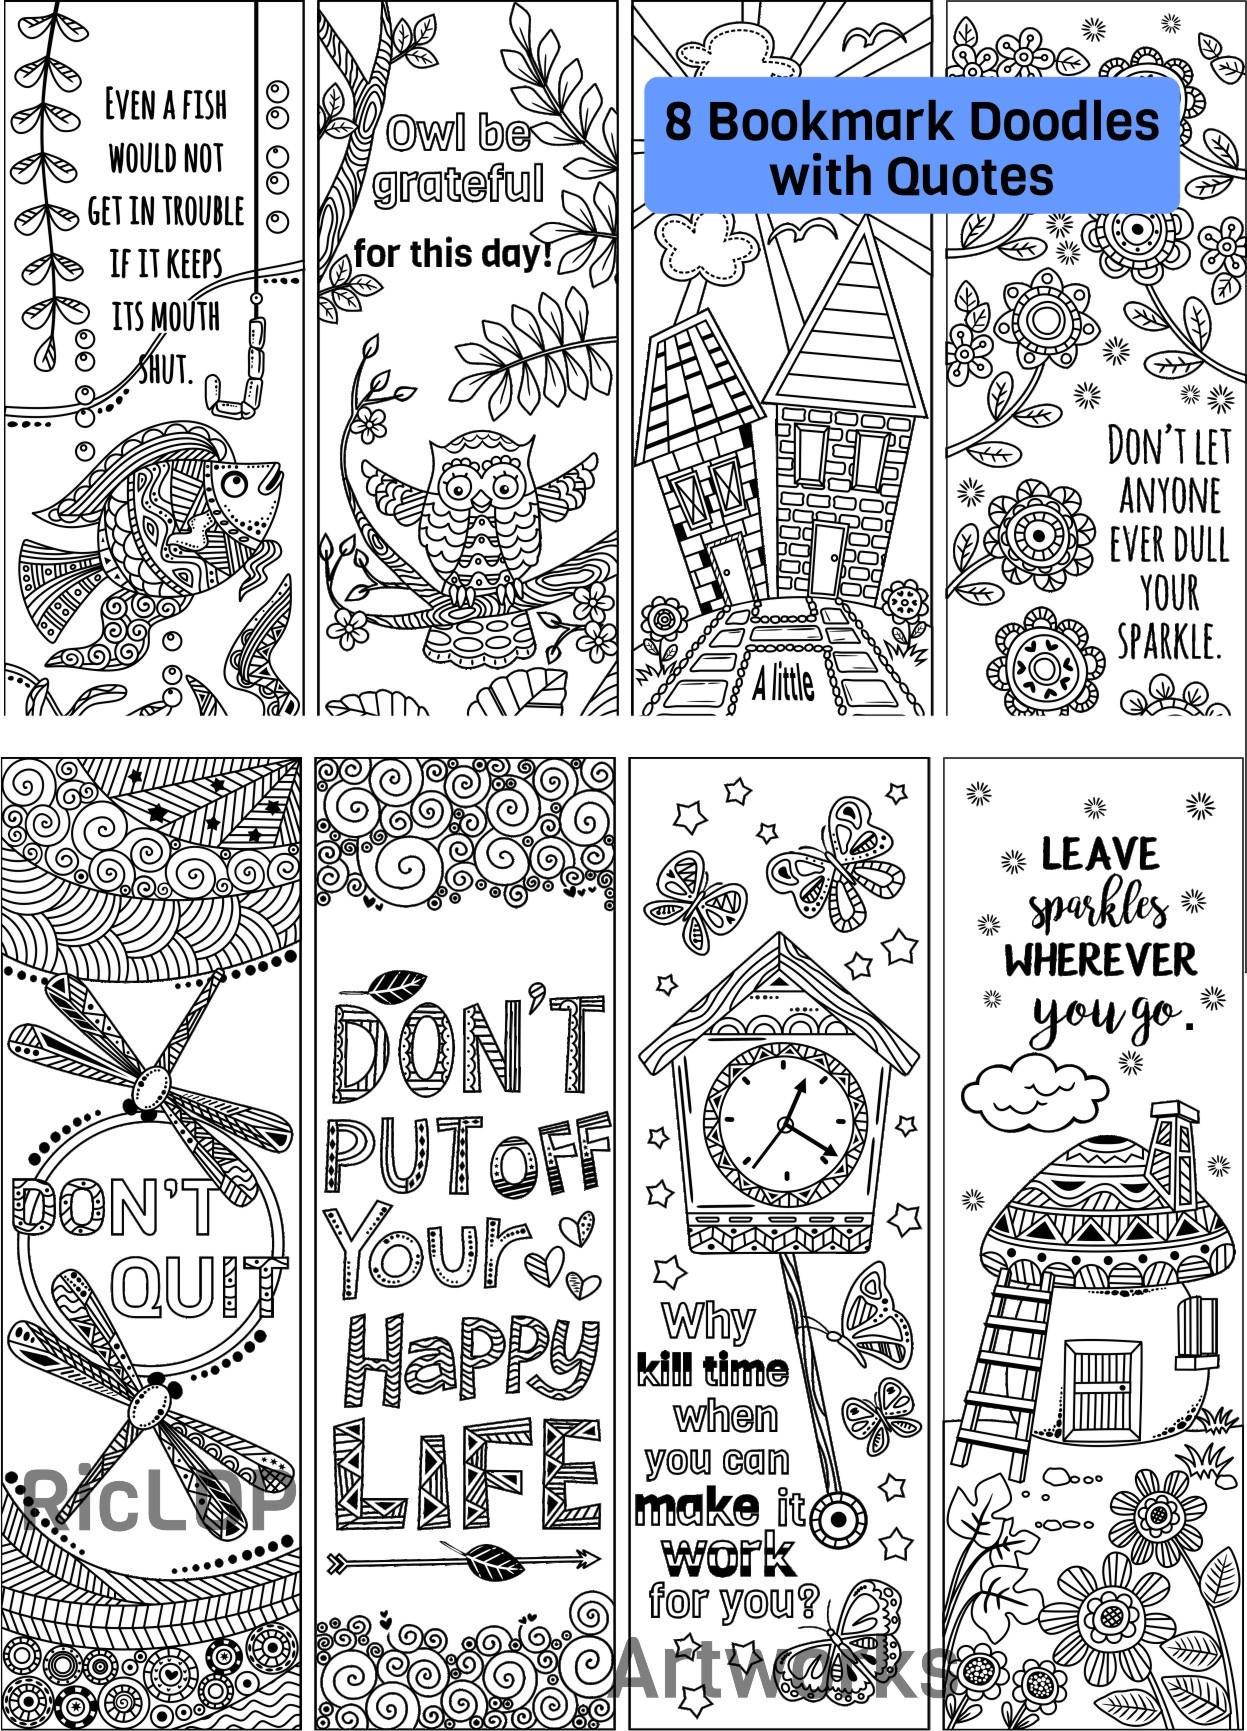 photo regarding Printable Bookmarks for Adults called 8 Coloring Bookmarks with Offers